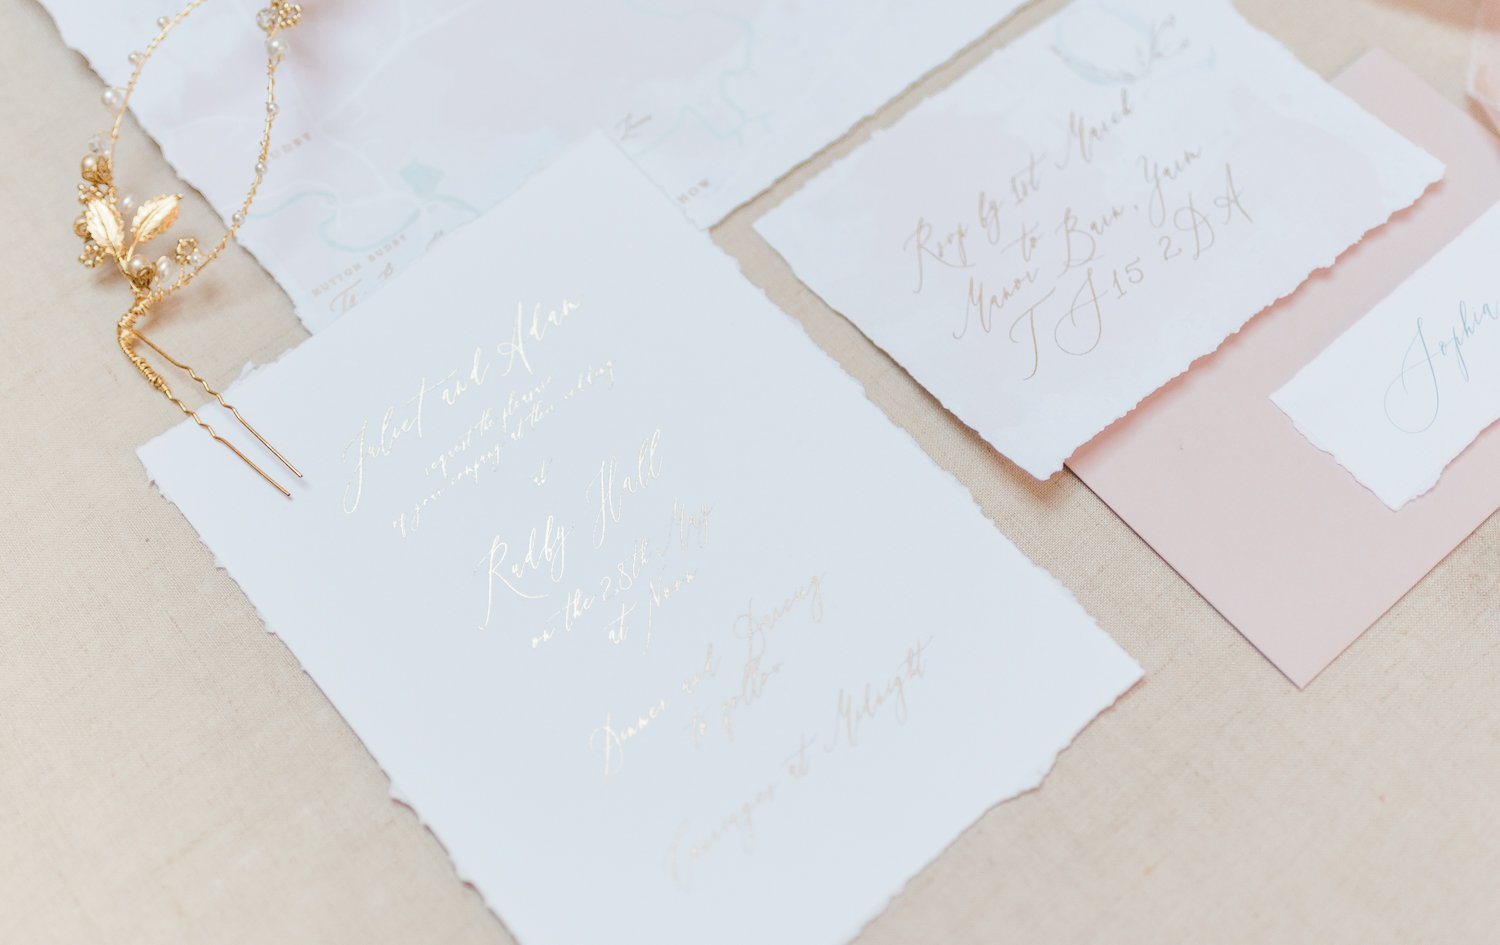 2019 wedding trend - Hand-illustrated wedding stationery | Photo by Cristina Ilao